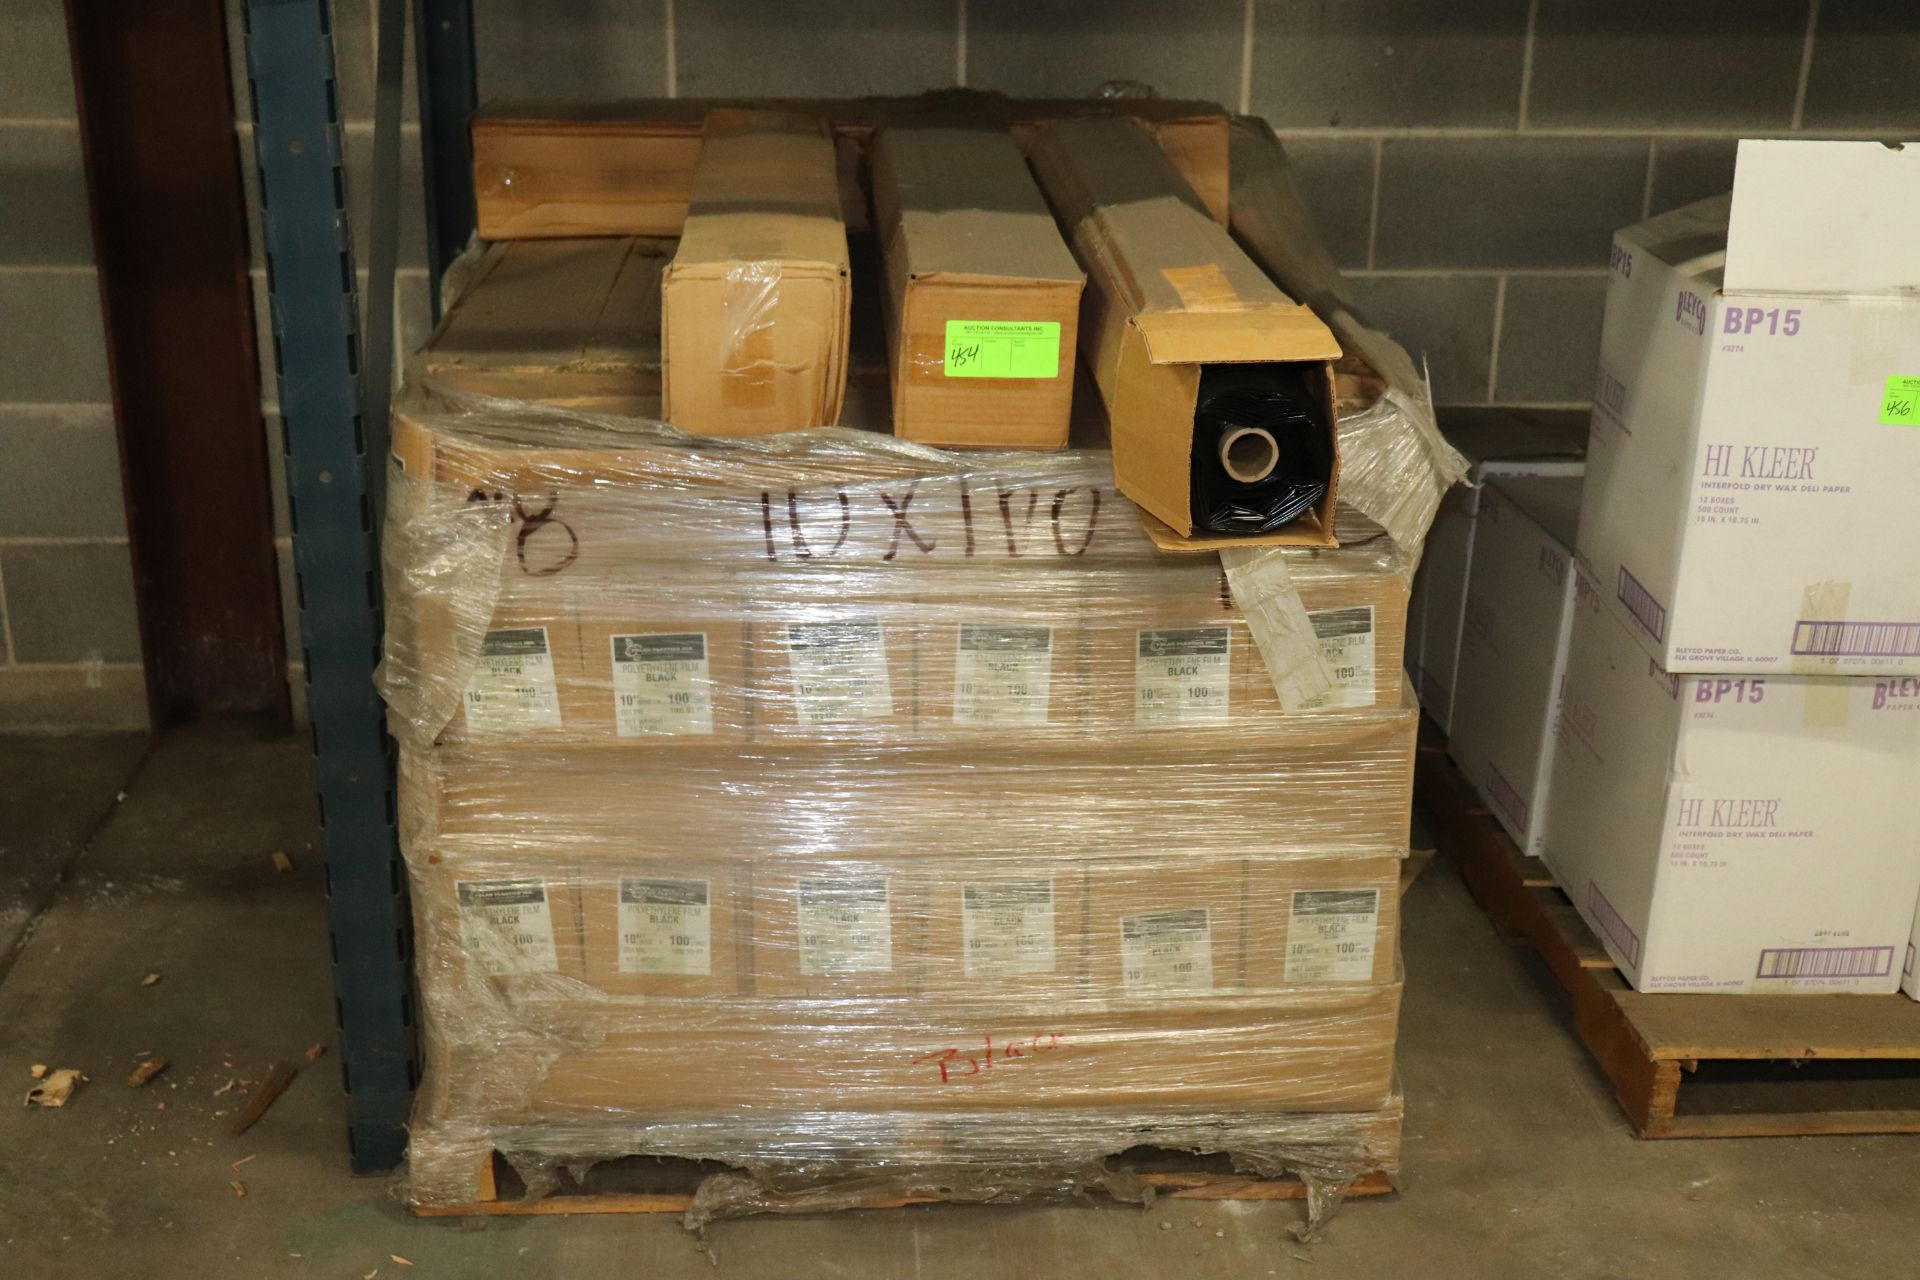 Lot 454 - Pallet of polyurethane film, black, 10' x 100', approximately 34 boxes